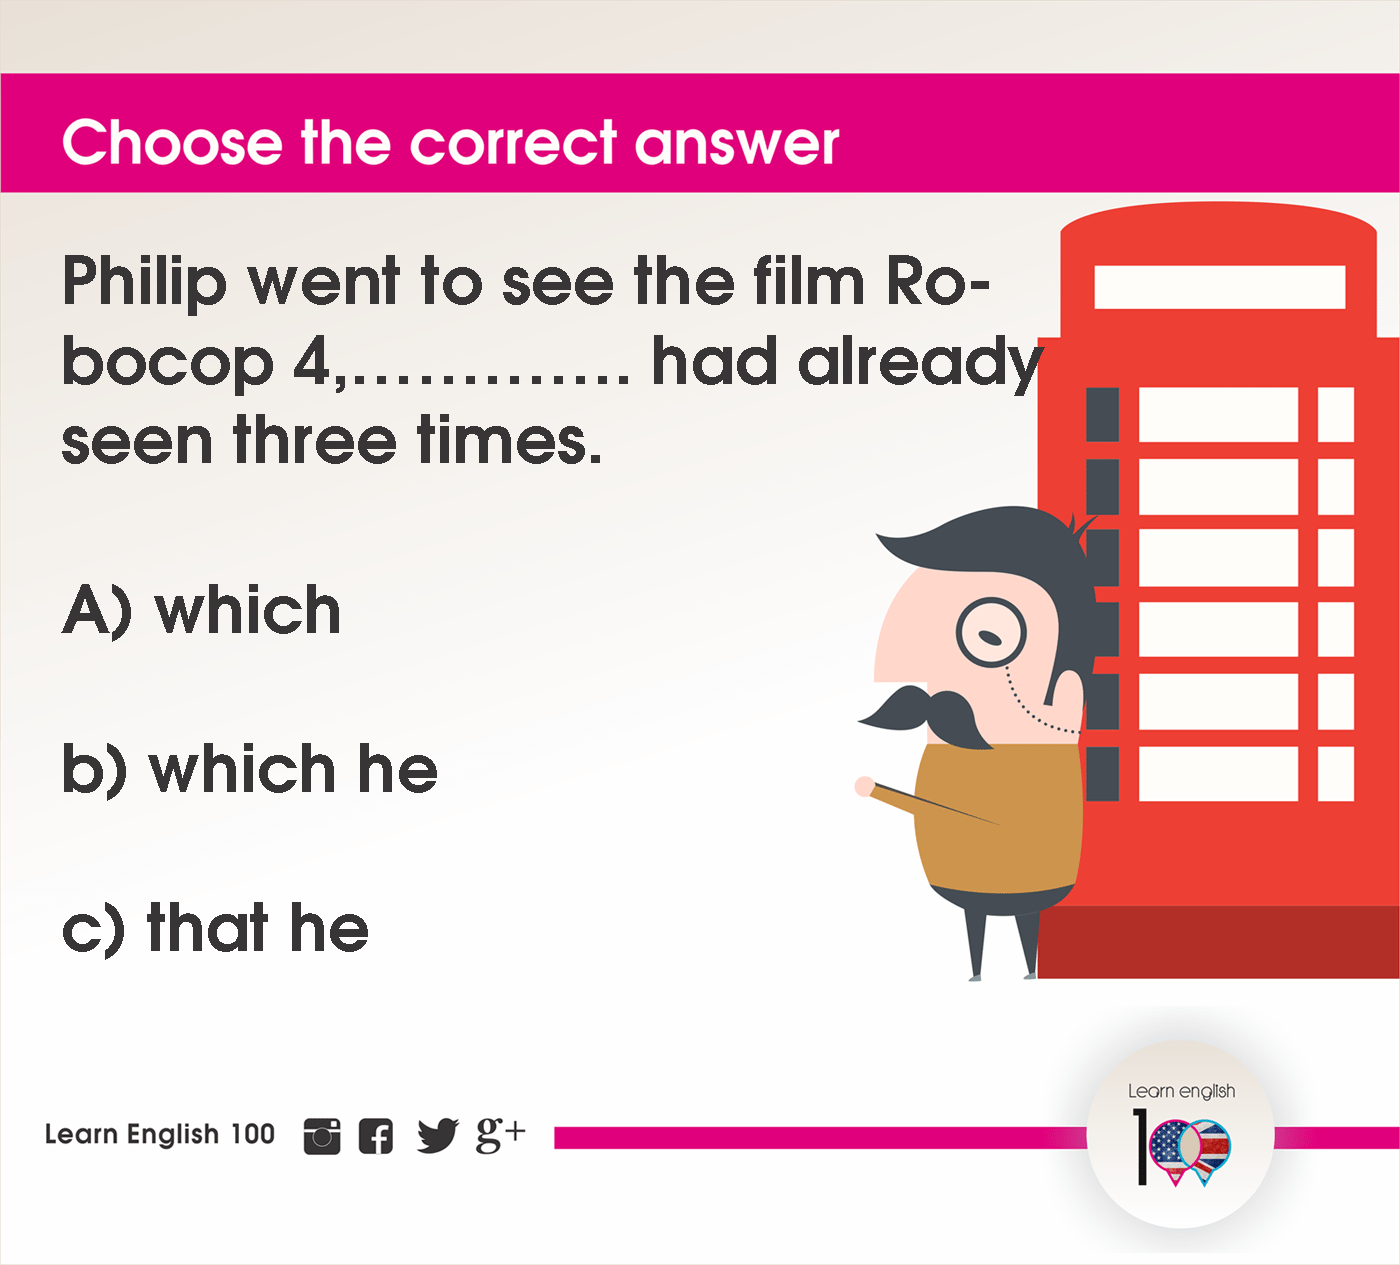 Question 119: Philip went to see the film Robocop 4,…………. had already seen three times.